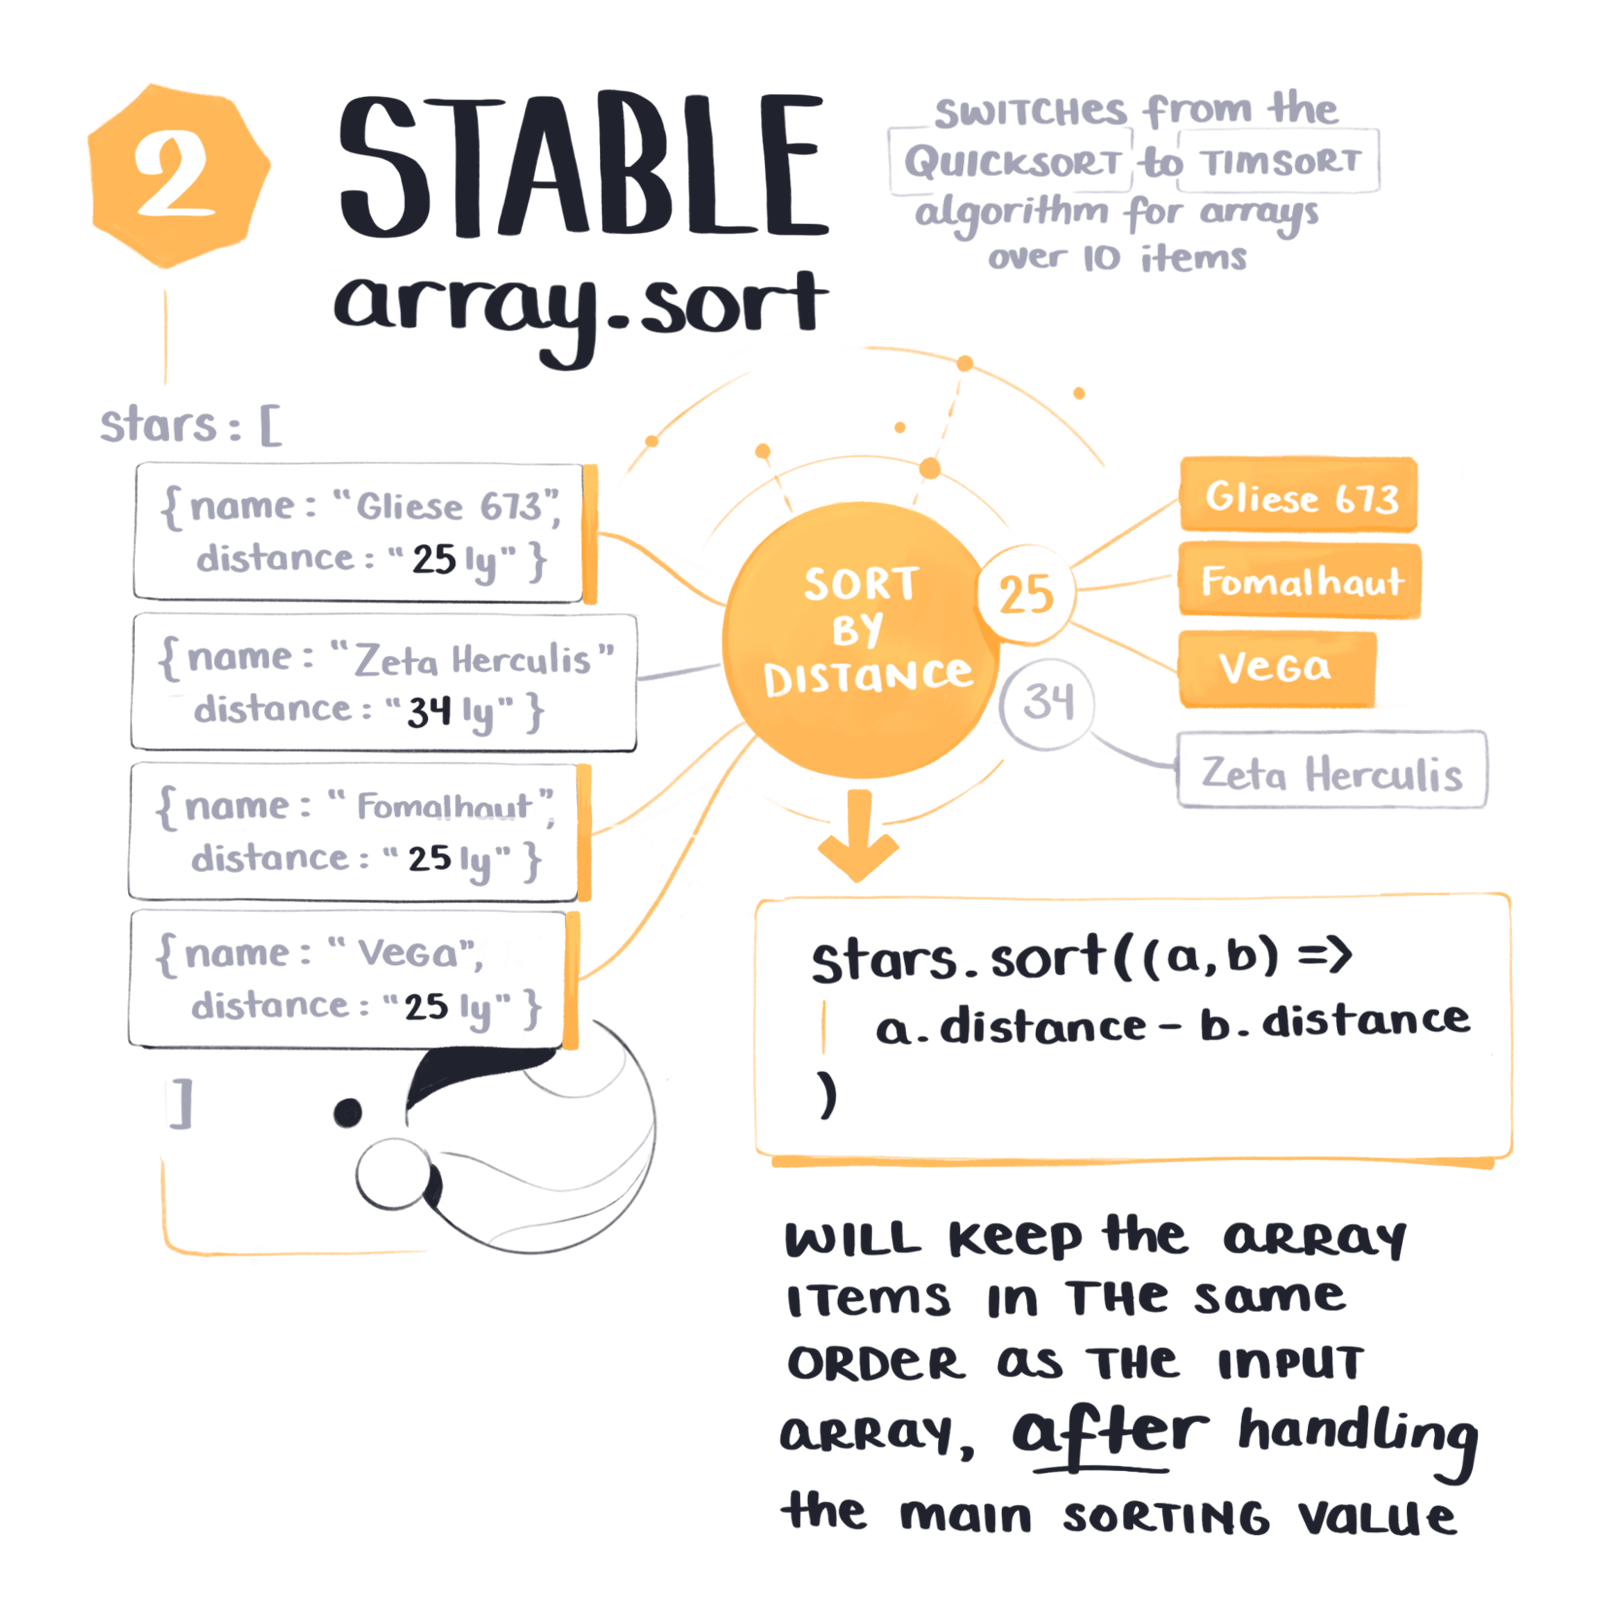 Stable array.sort